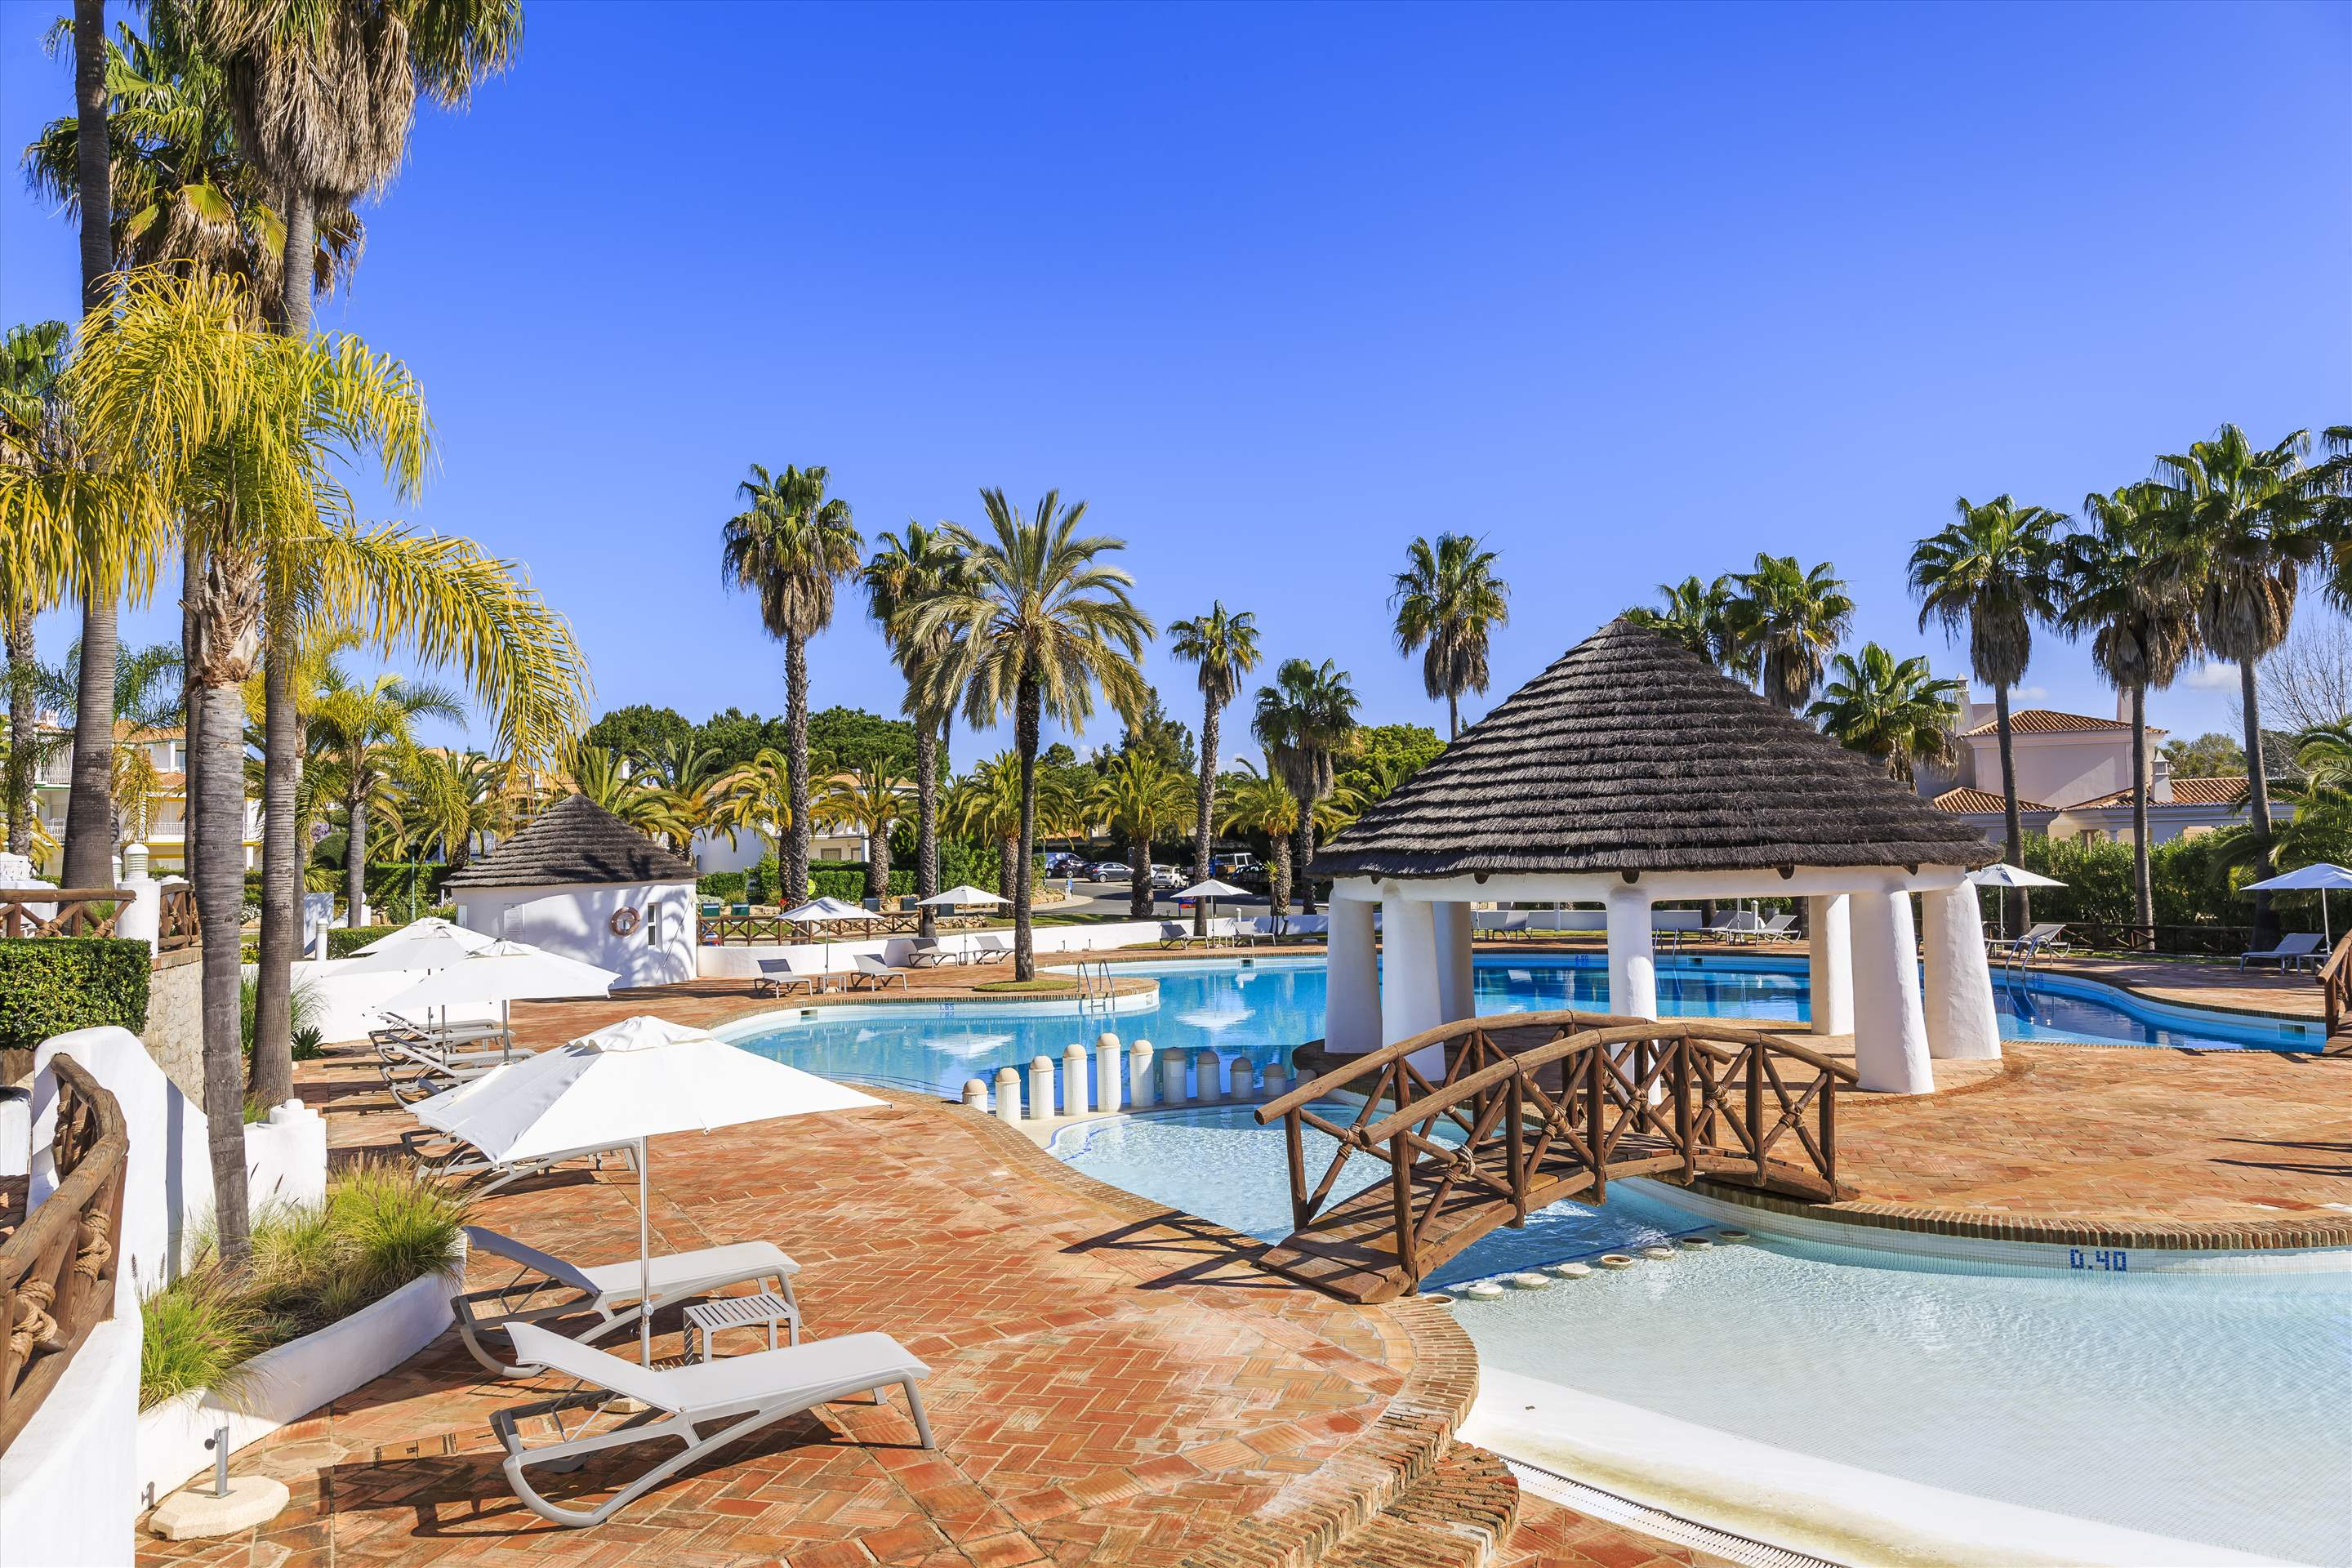 Encosta do Lago 2 Bedroom Apt, Private Pool, 2 bedroom apartment in Encosta do Lago Resort, Algarve Photo #13